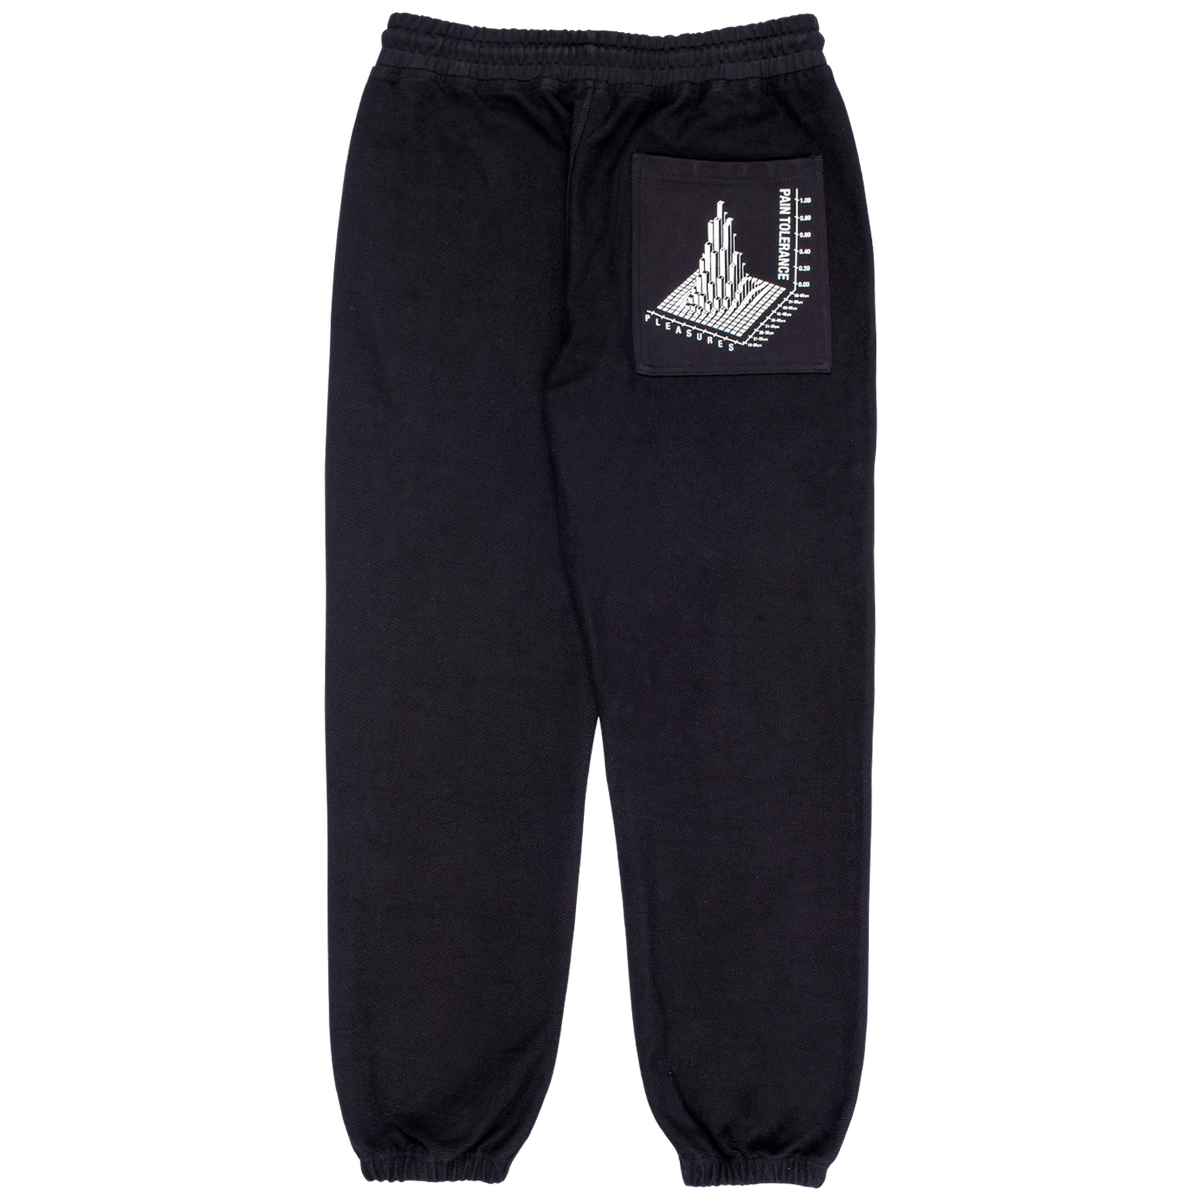 PLEASURES LOGIC REVERSE TERRY SWEATPANTS BLACK